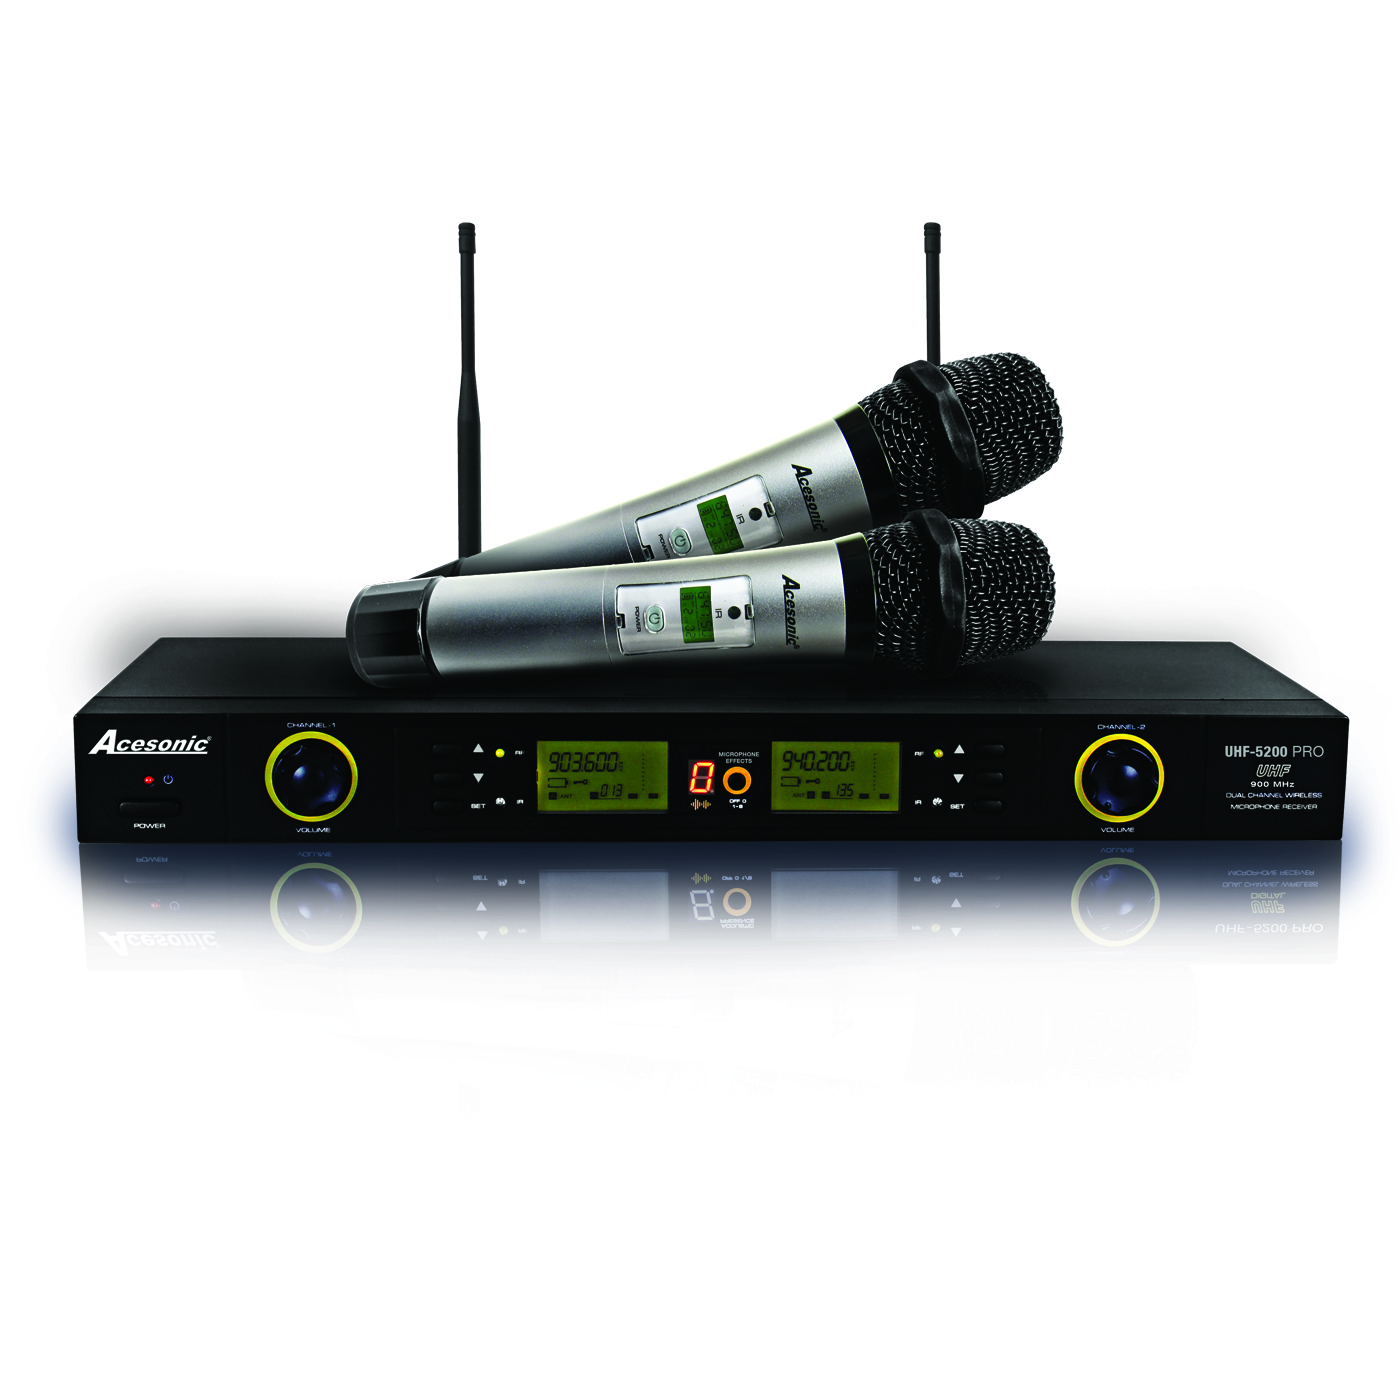 Acesonic Karaoke Cable : Acesonic uhf pro mhz digital wireless microphone